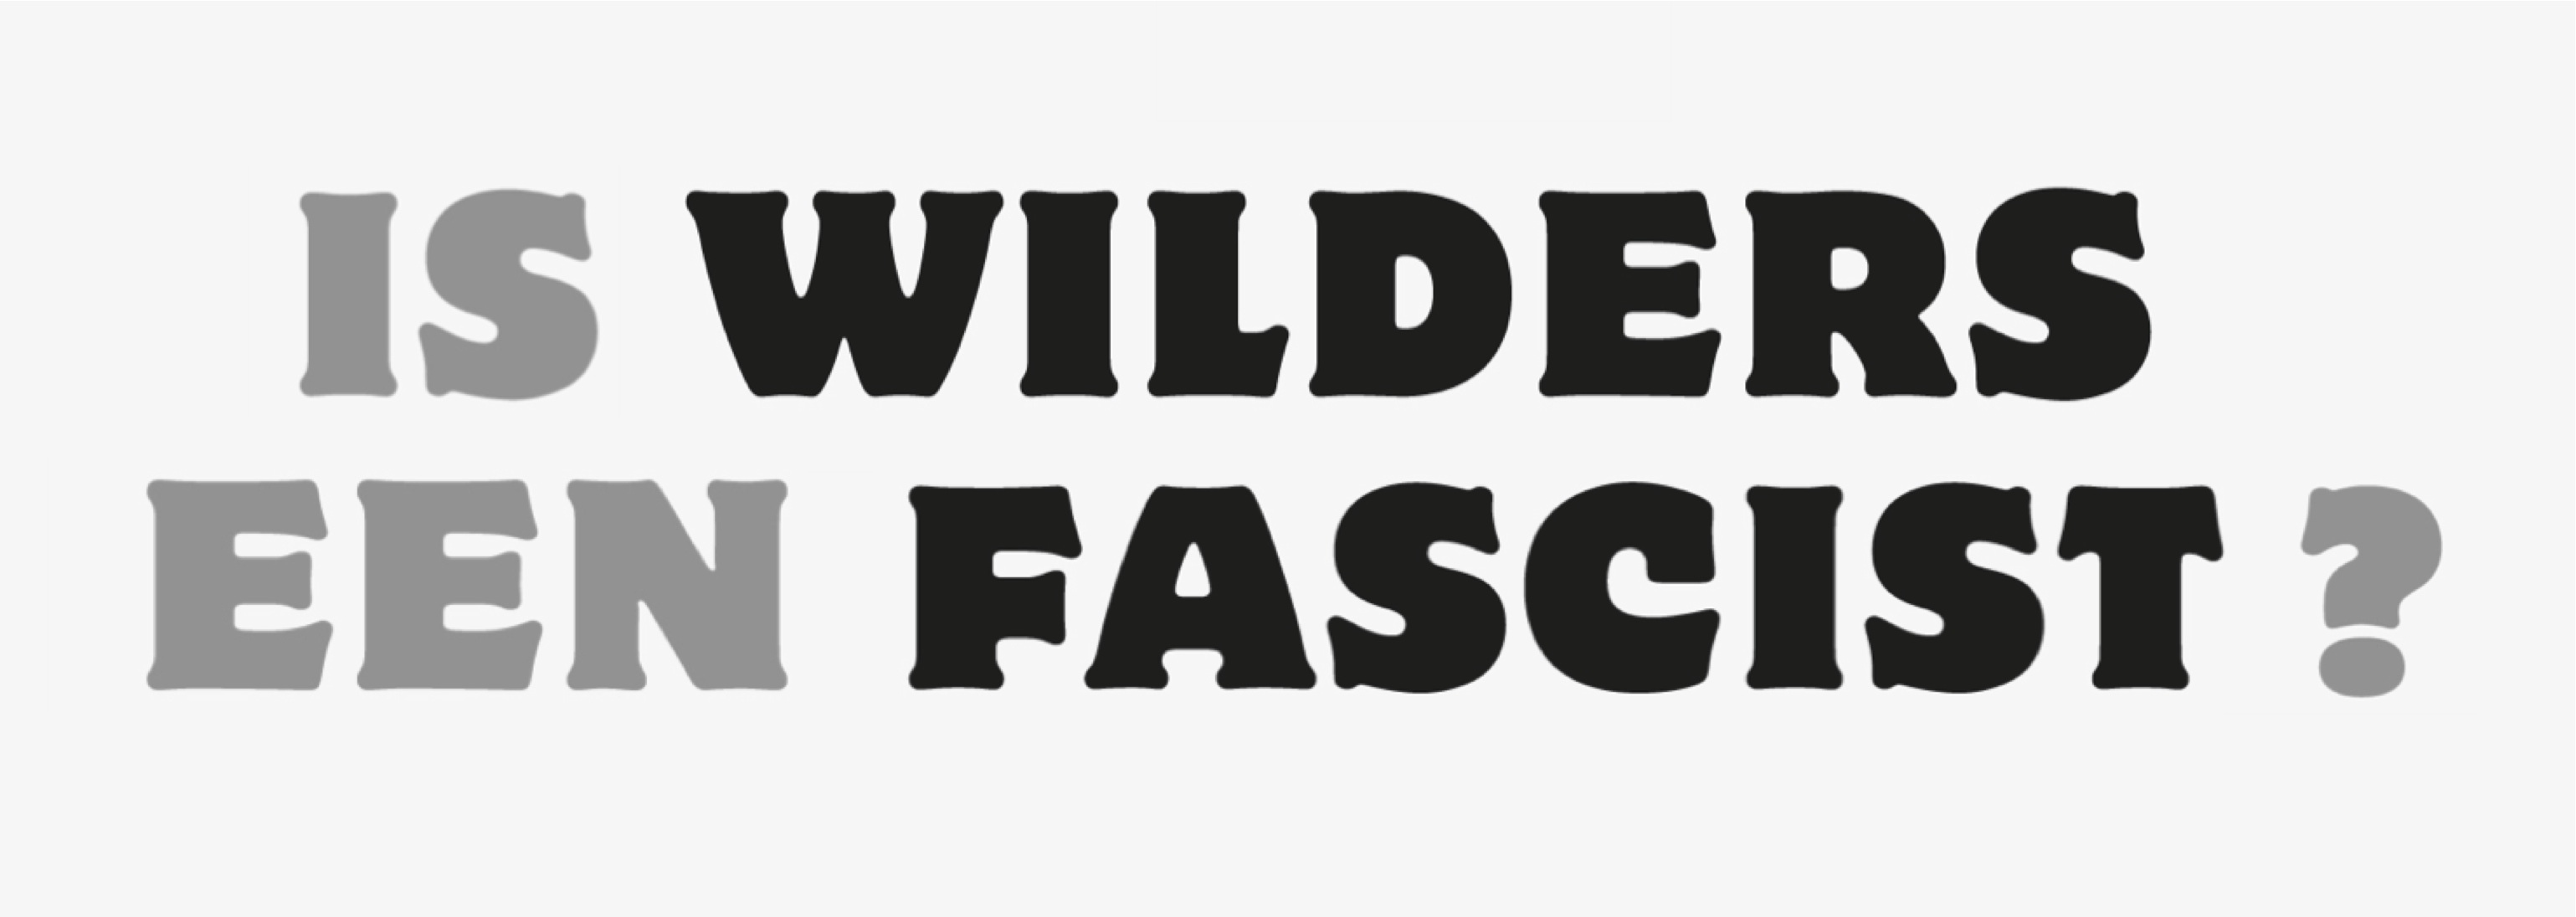 Is-Wilders-een-fascist